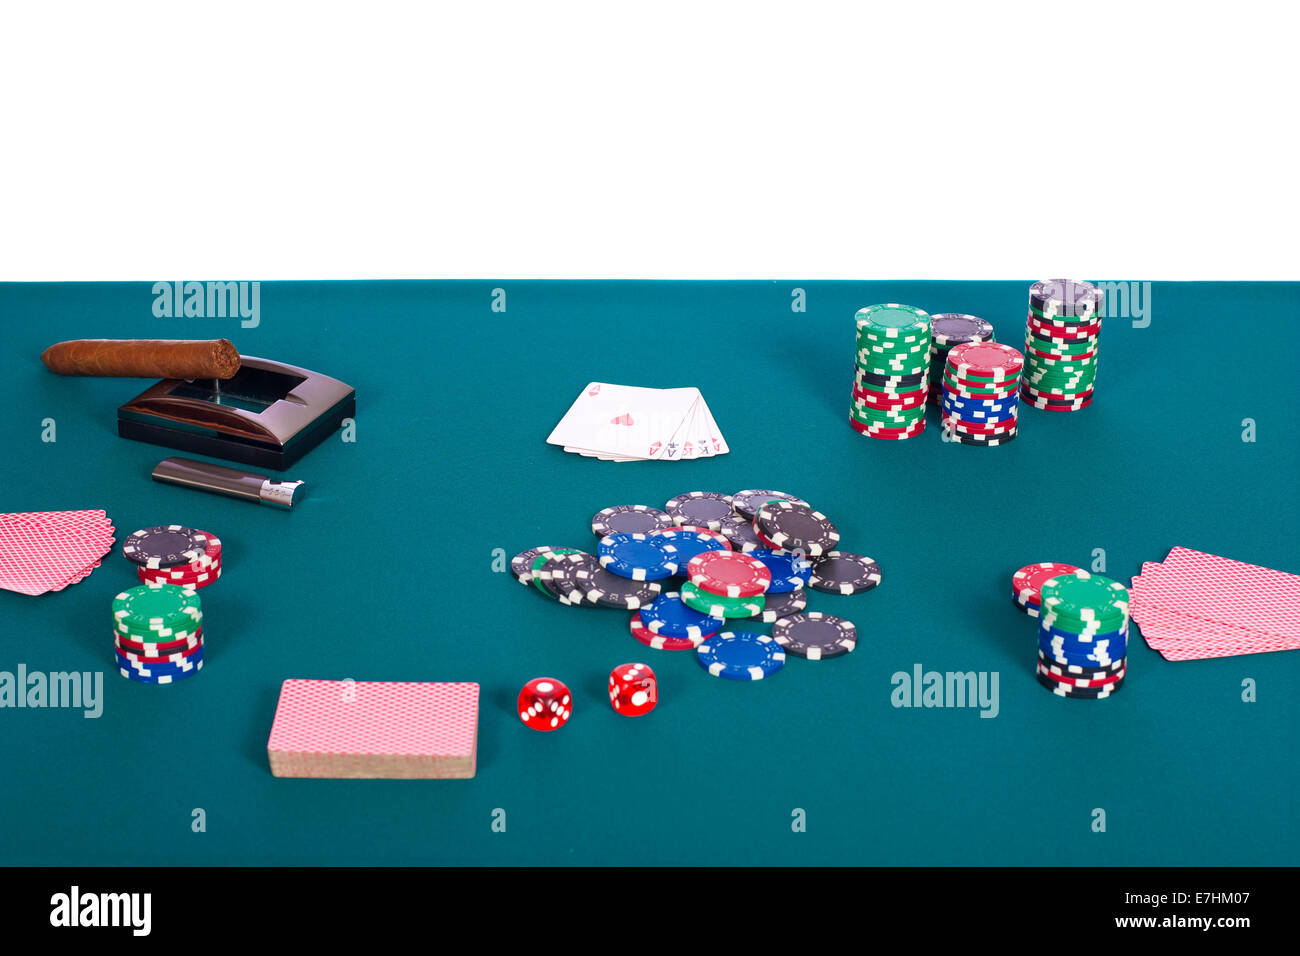 Poker table background - Stock Photo Value Poker Chips On A Green Felt Poker Table Background And One Hand Of A Full House With White Background